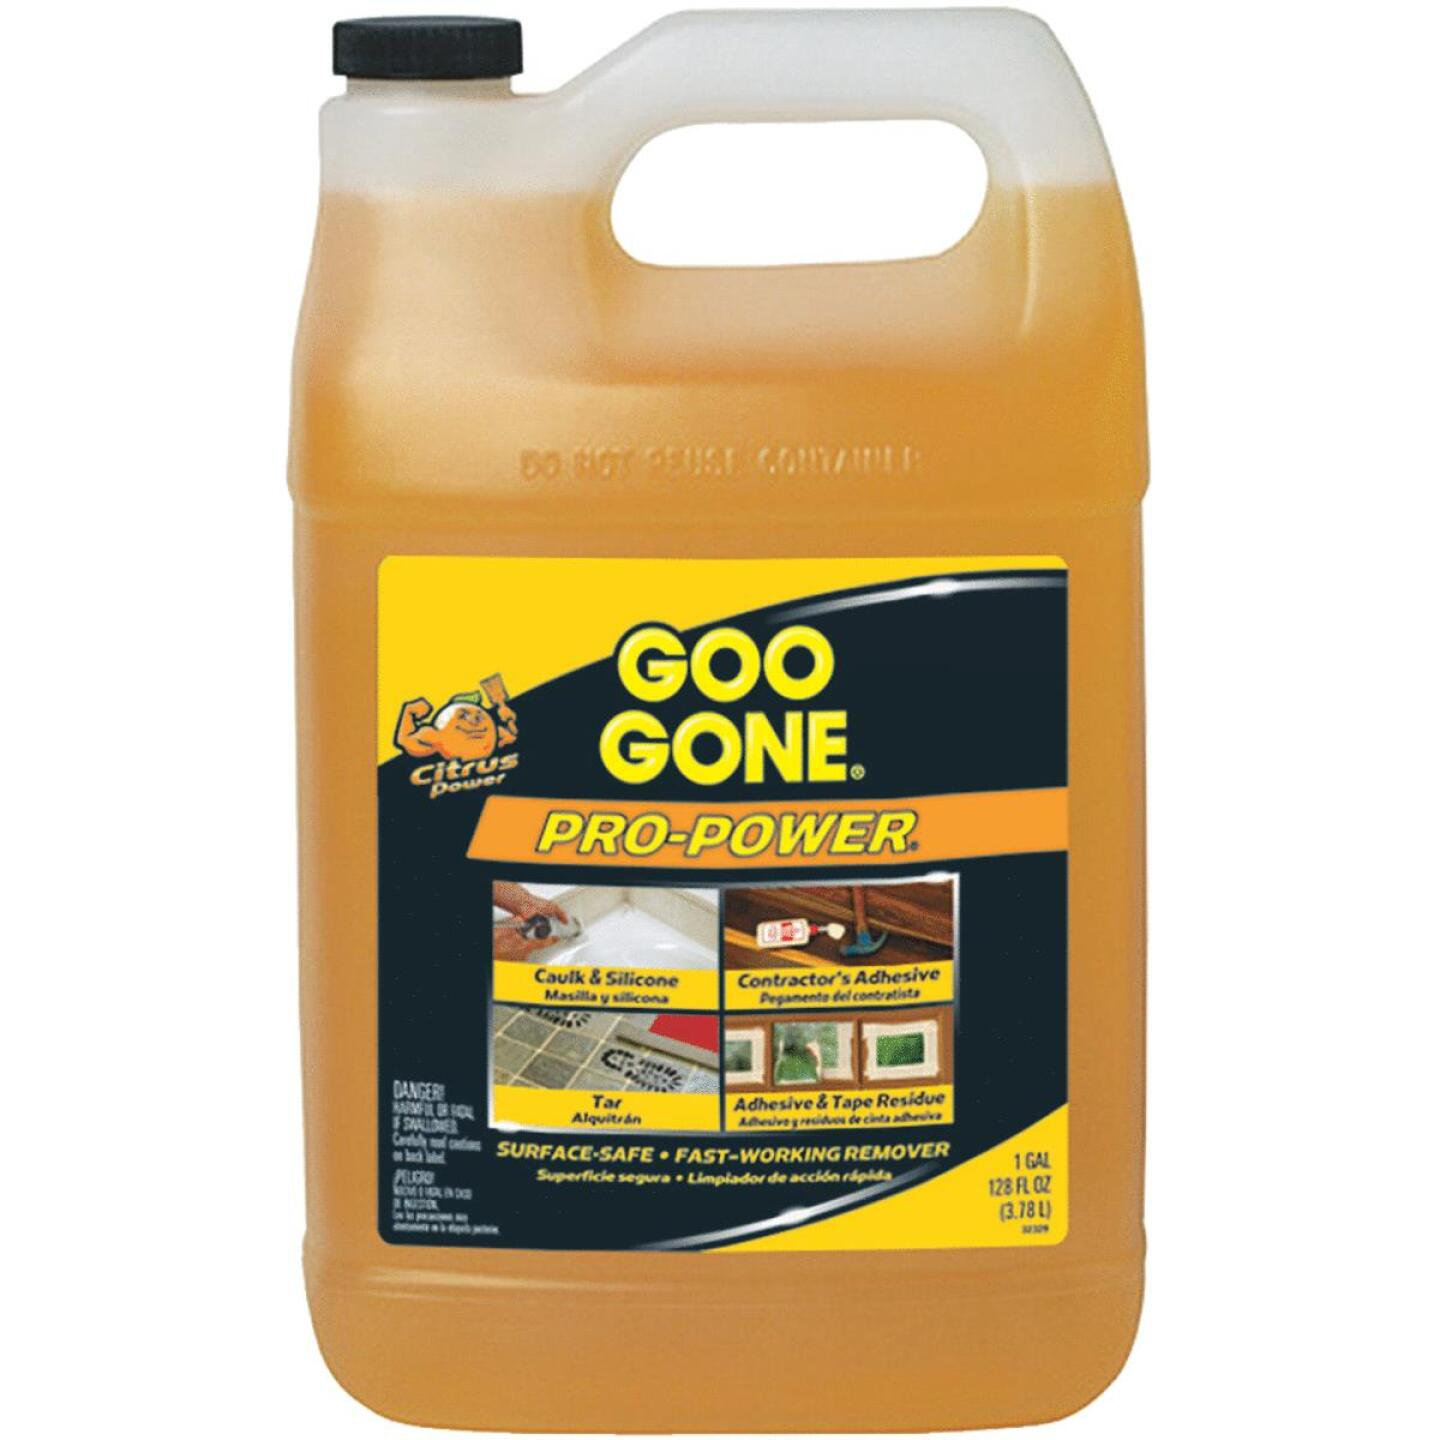 Goo Gone 1 Gal. Pro-Power Adhesive Remover Image 197